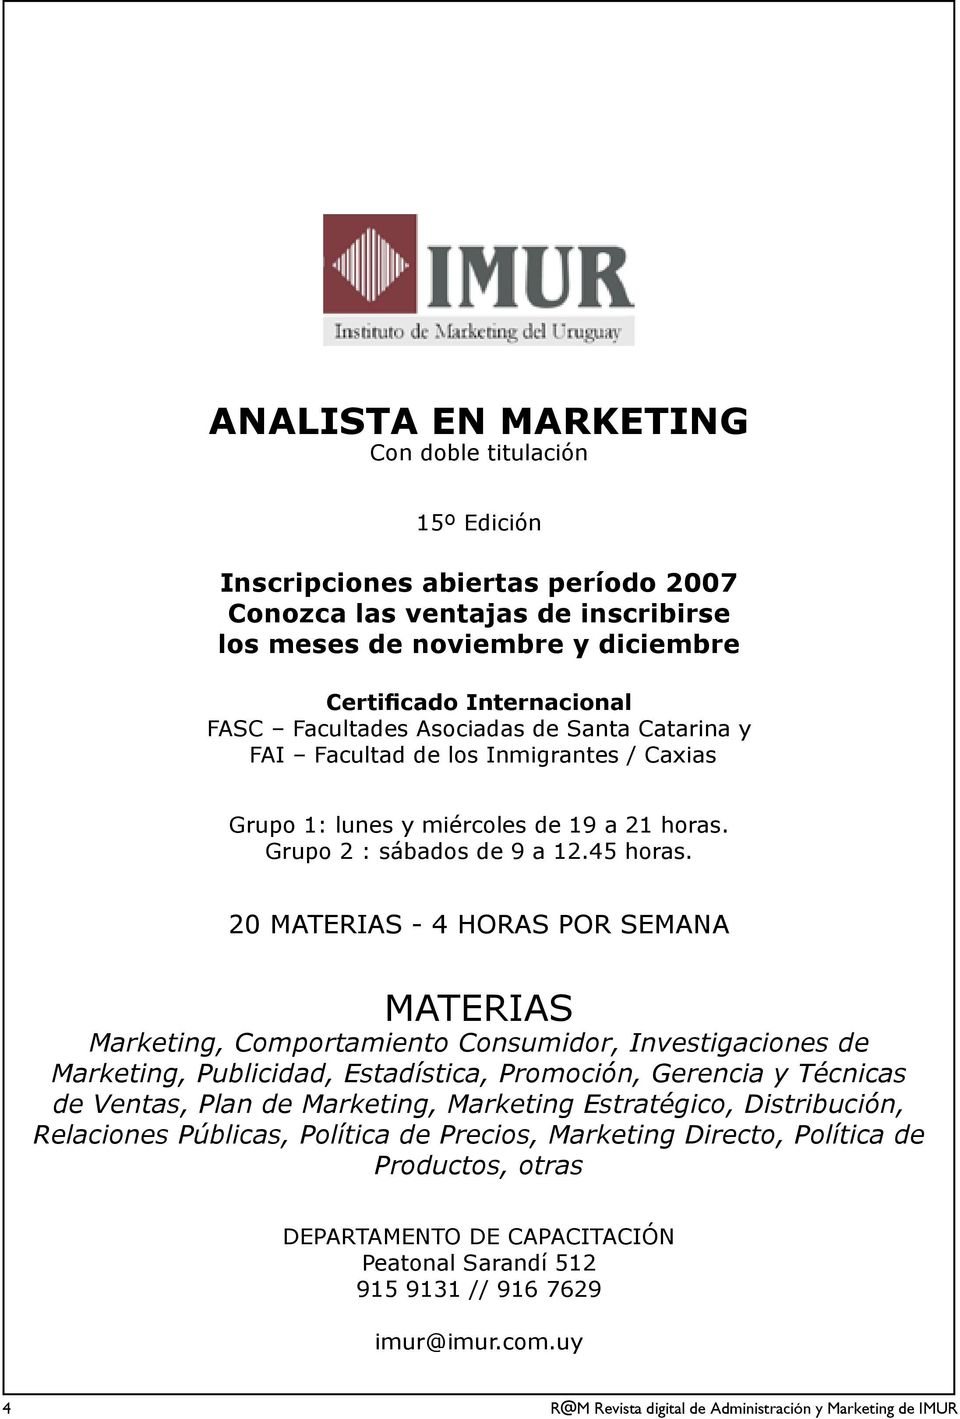 20 MATERIAS - 4 HORAS POR SEMANA MATERIAS Marketing, Comportamiento Consumidor, Investigaciones de Marketing, Publicidad, Estadística, Promoción, Gerencia y Técnicas de Ventas, Plan de Marketing,